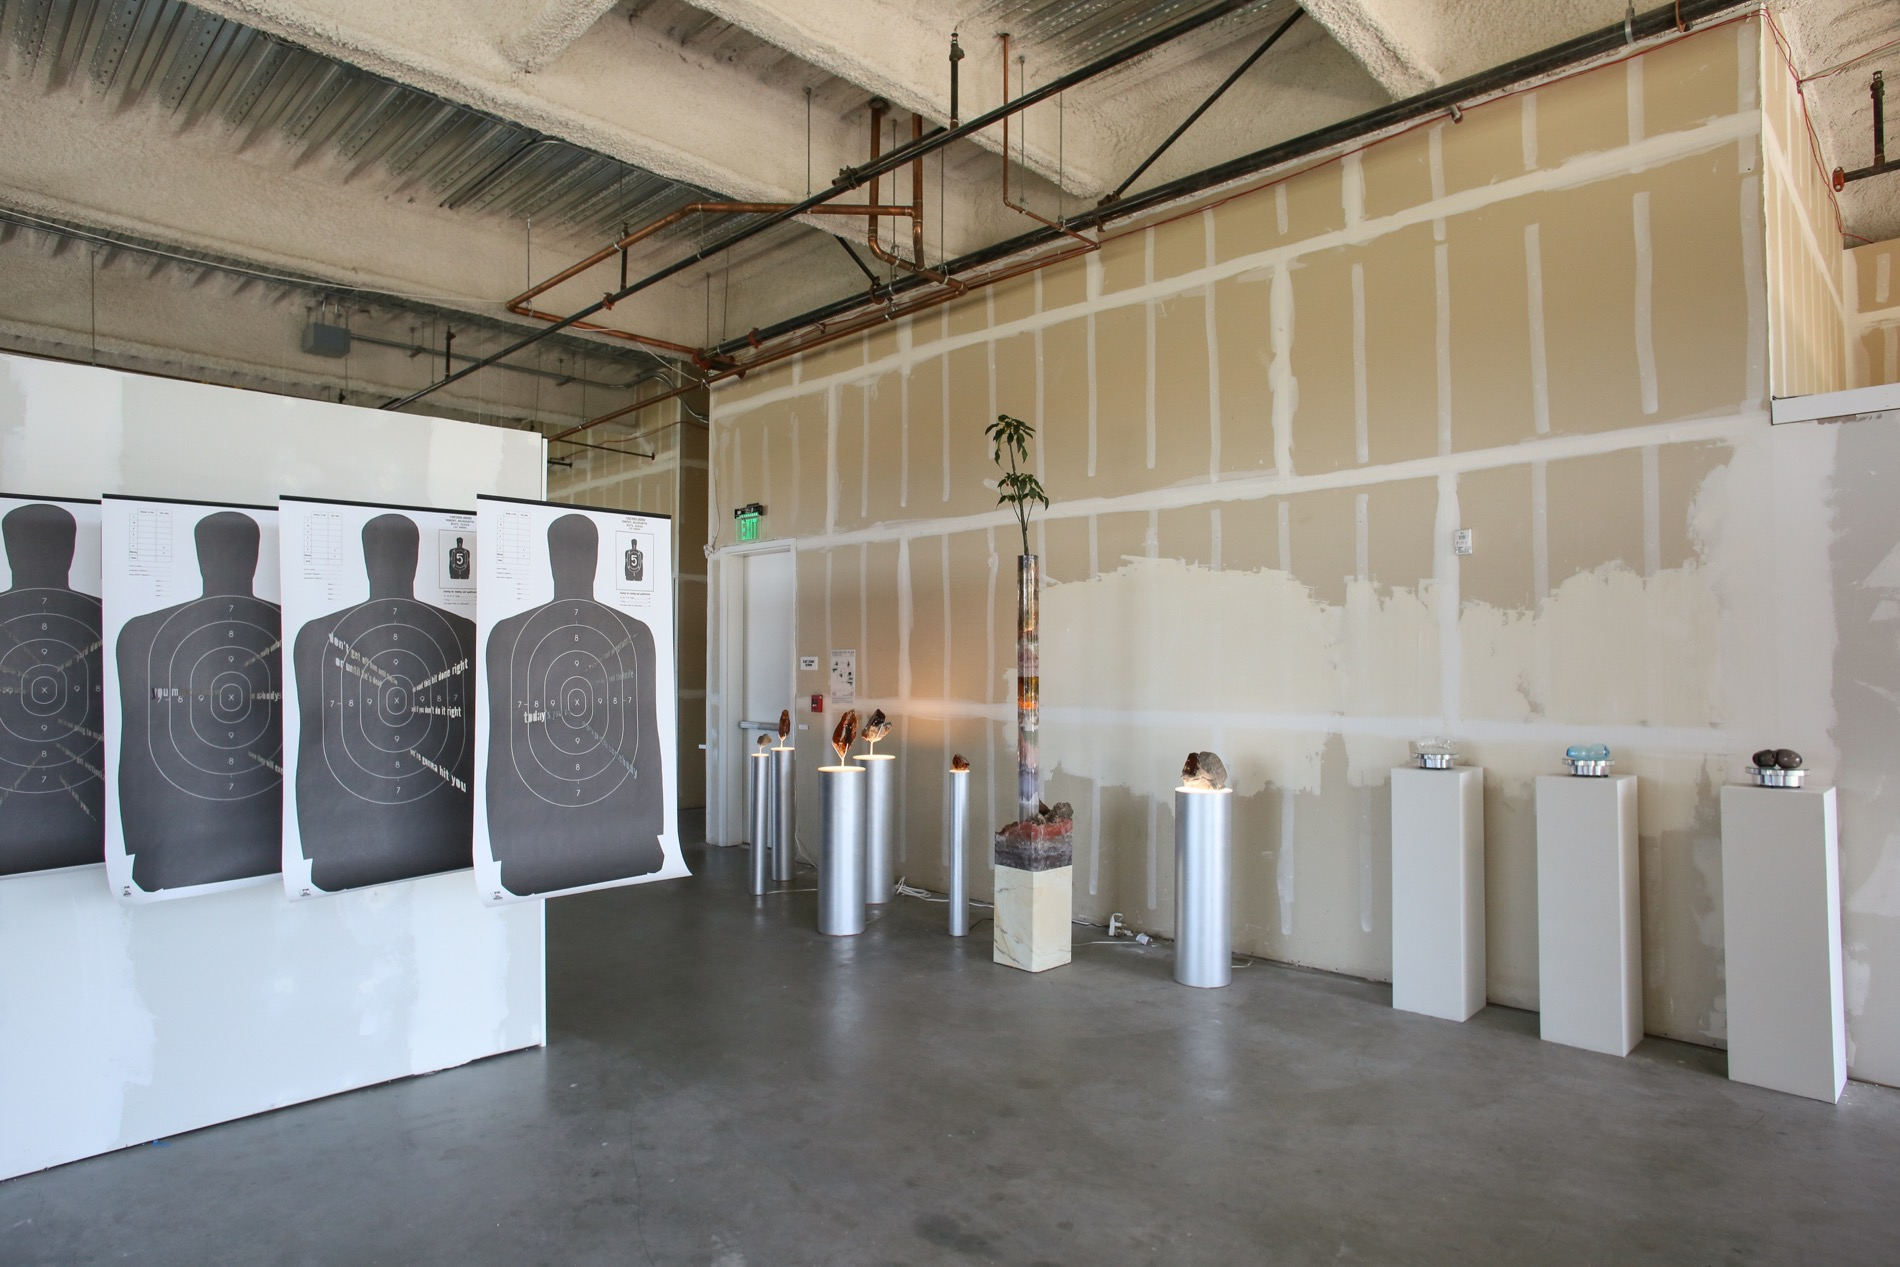 exhibition design was intended to mimic the unfinished look of the existing space, which had been vacant for 10 years